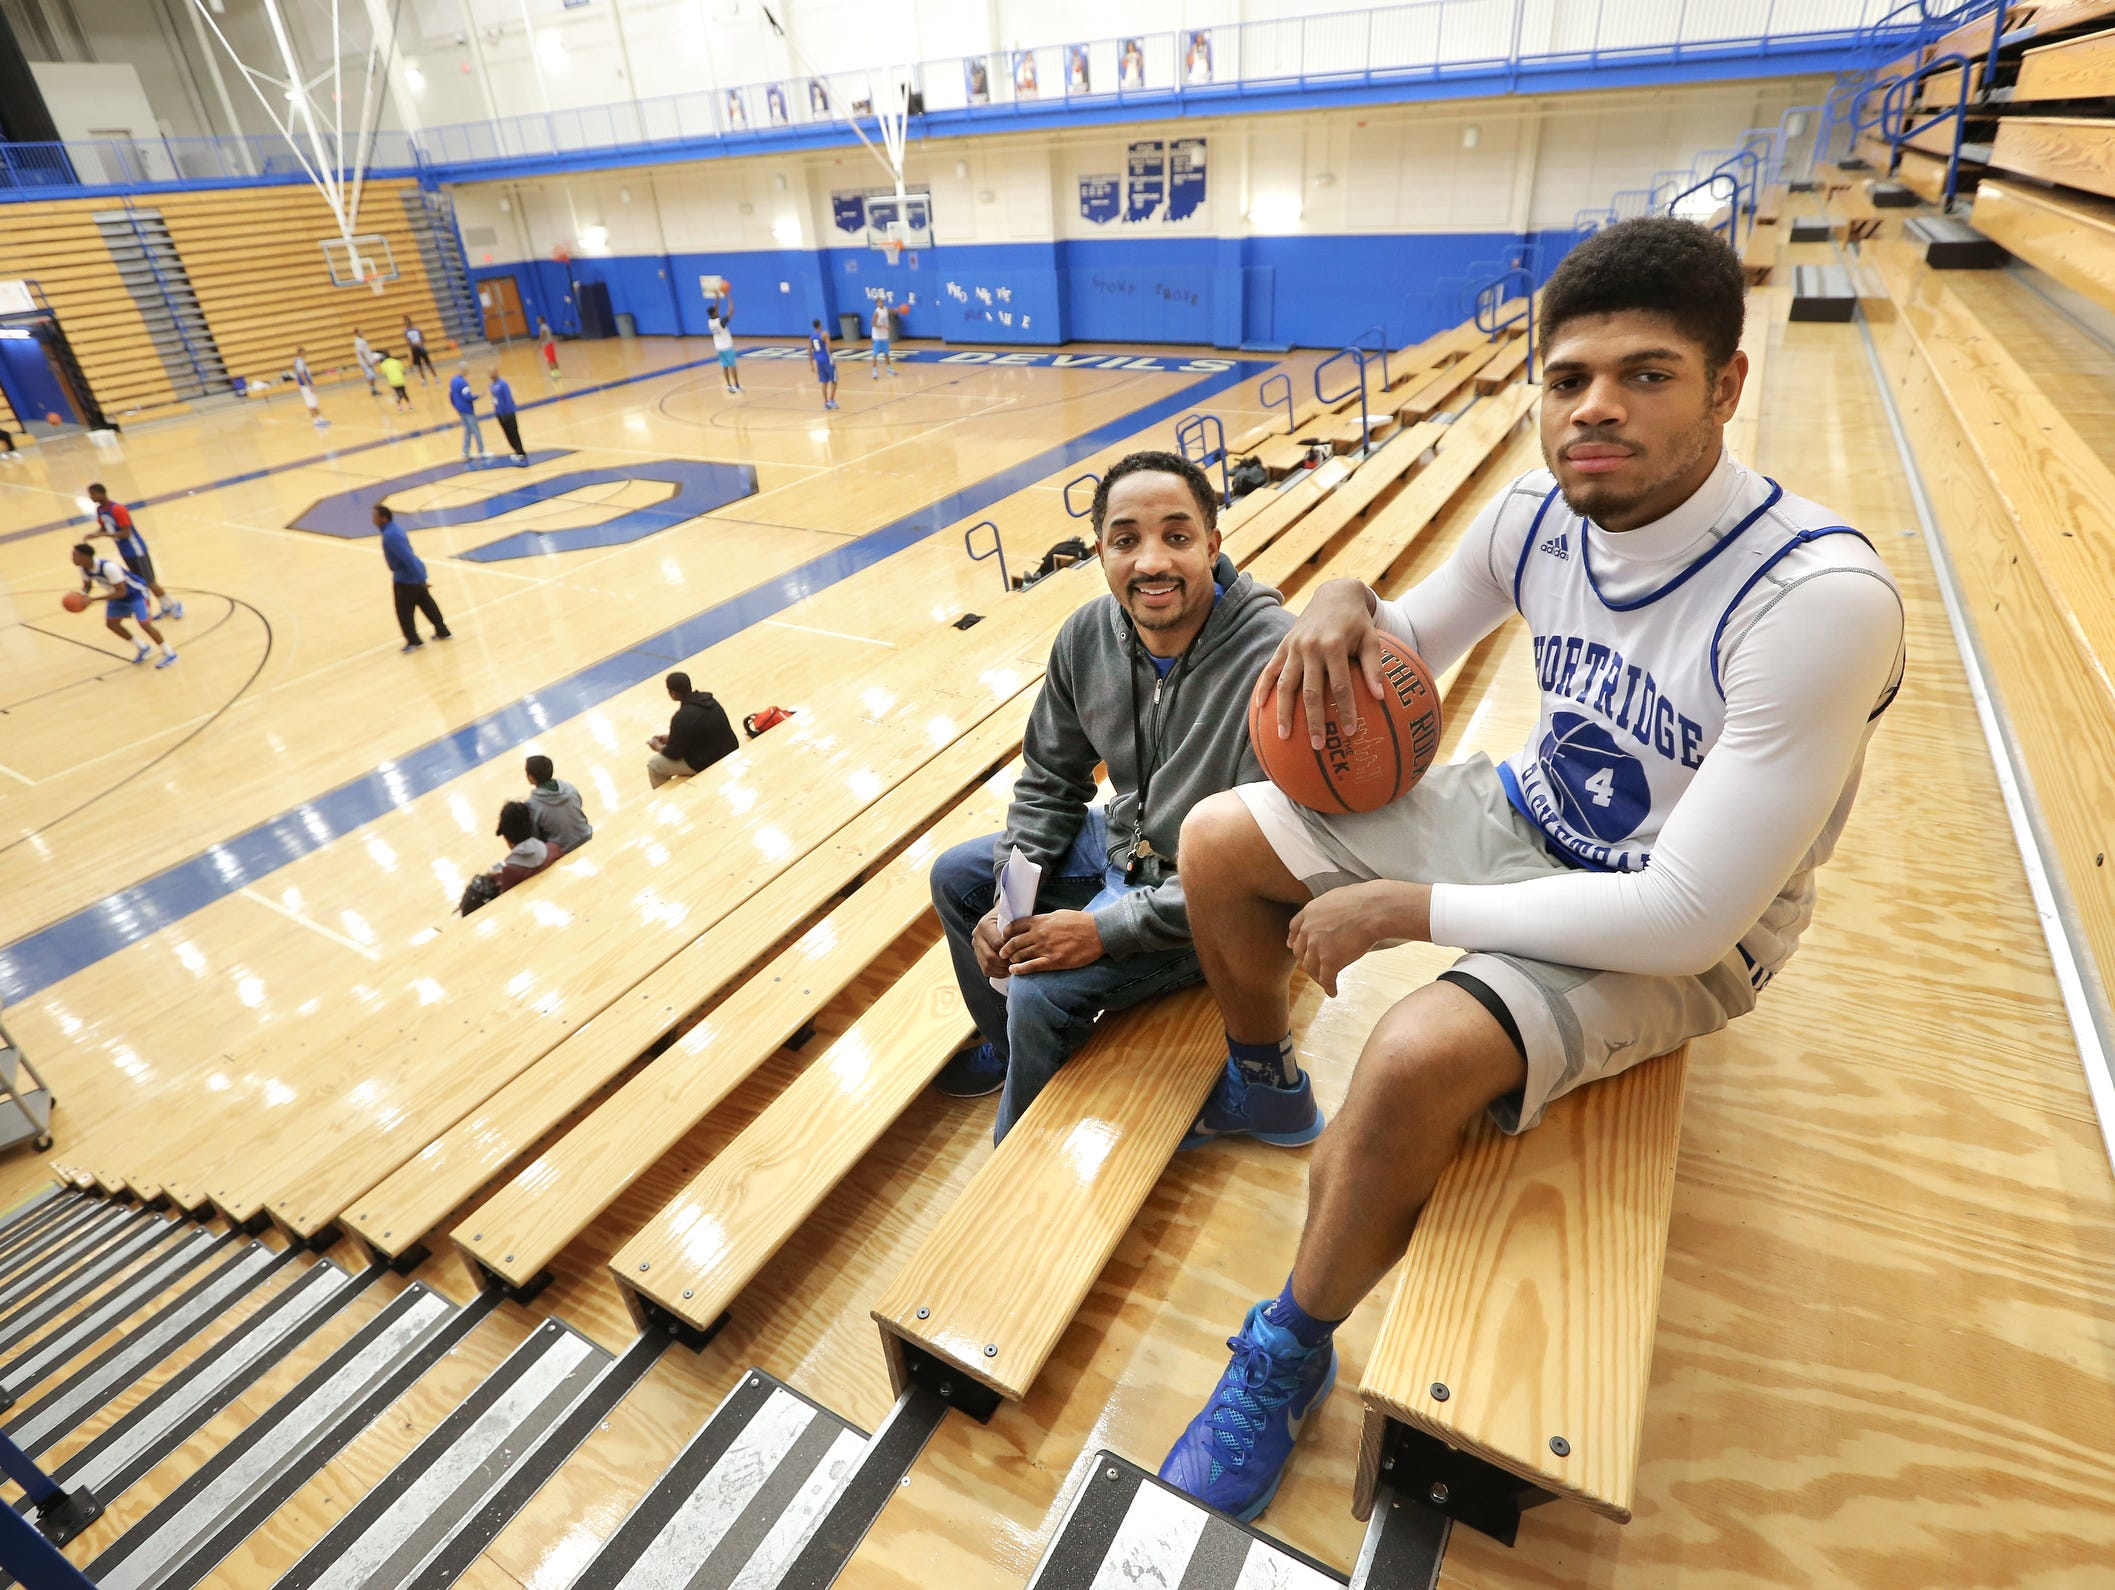 Last year, then-Shortridge High School basketball player Various Wilson was homeless and had been sleeping over on school nights with coach Donnie Bowling, left.